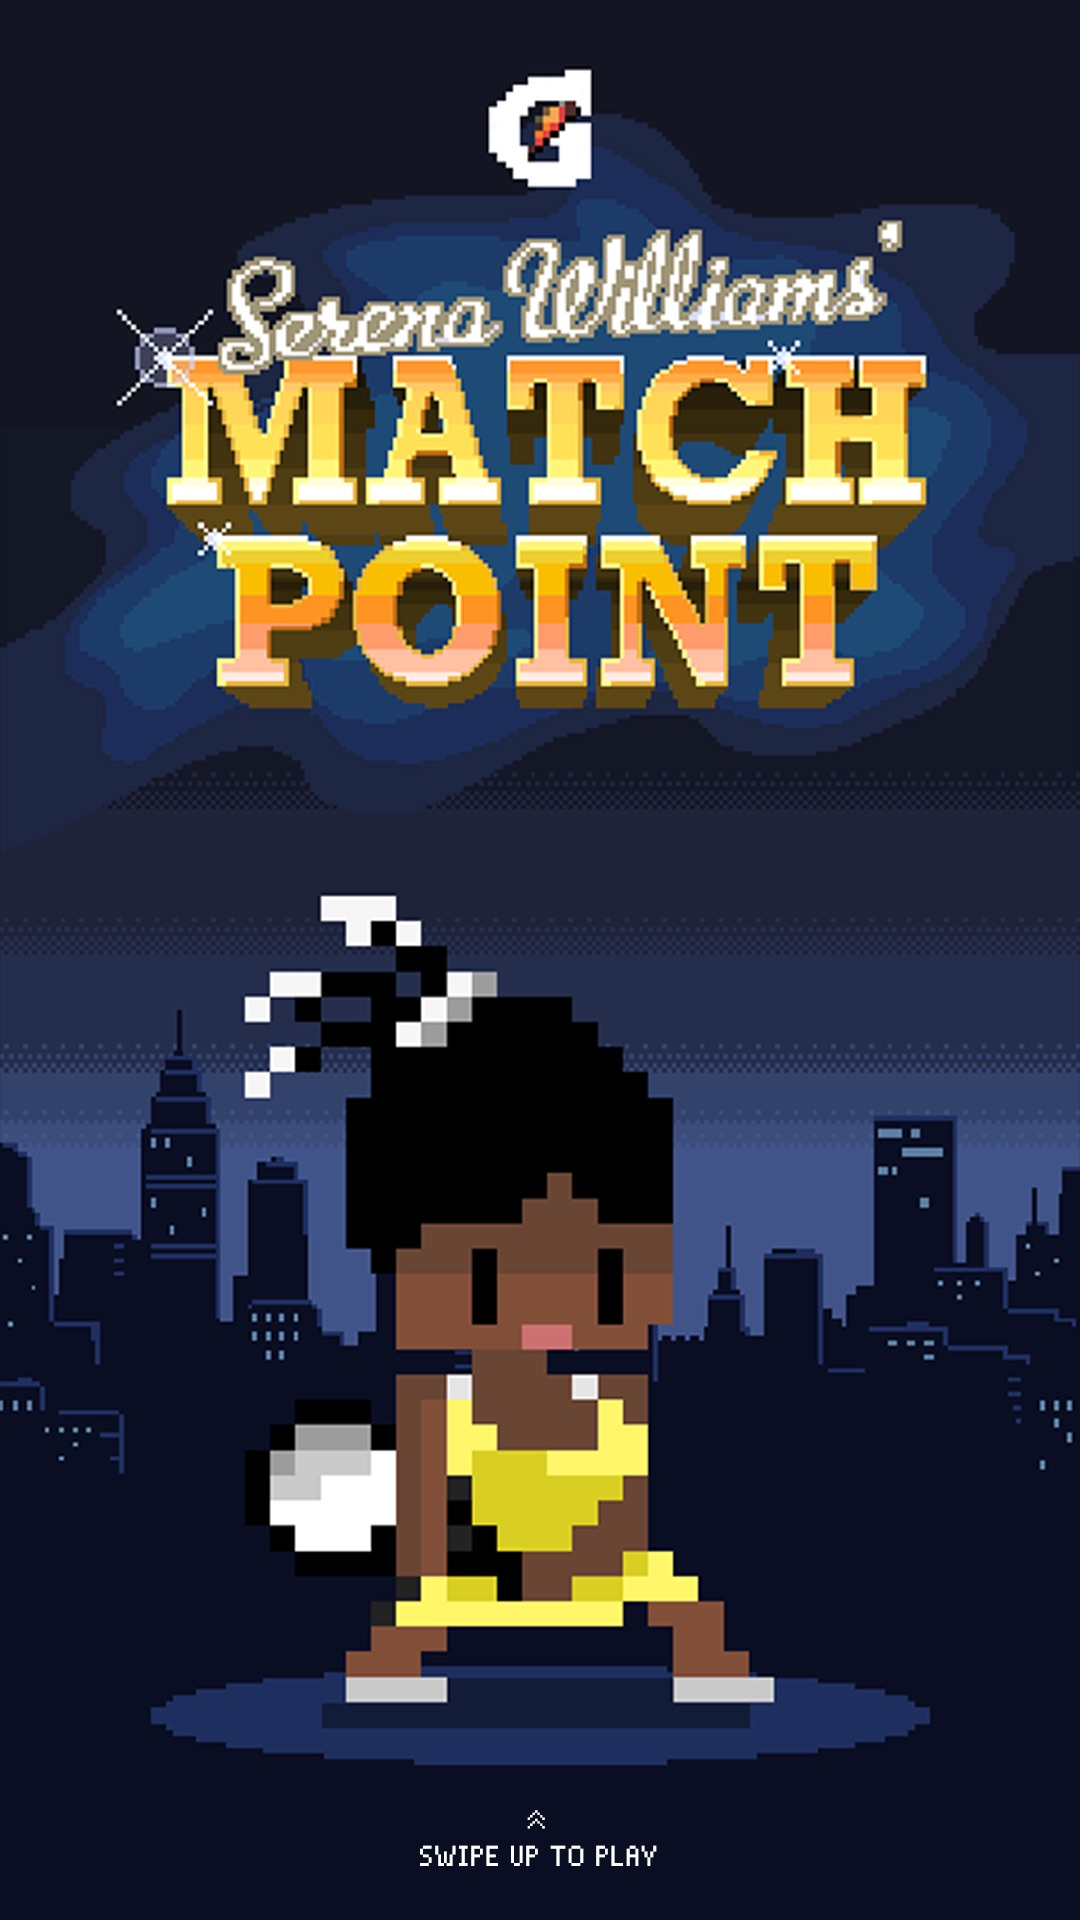 Serena Williams' Match Point | Gatorade Thumbnail